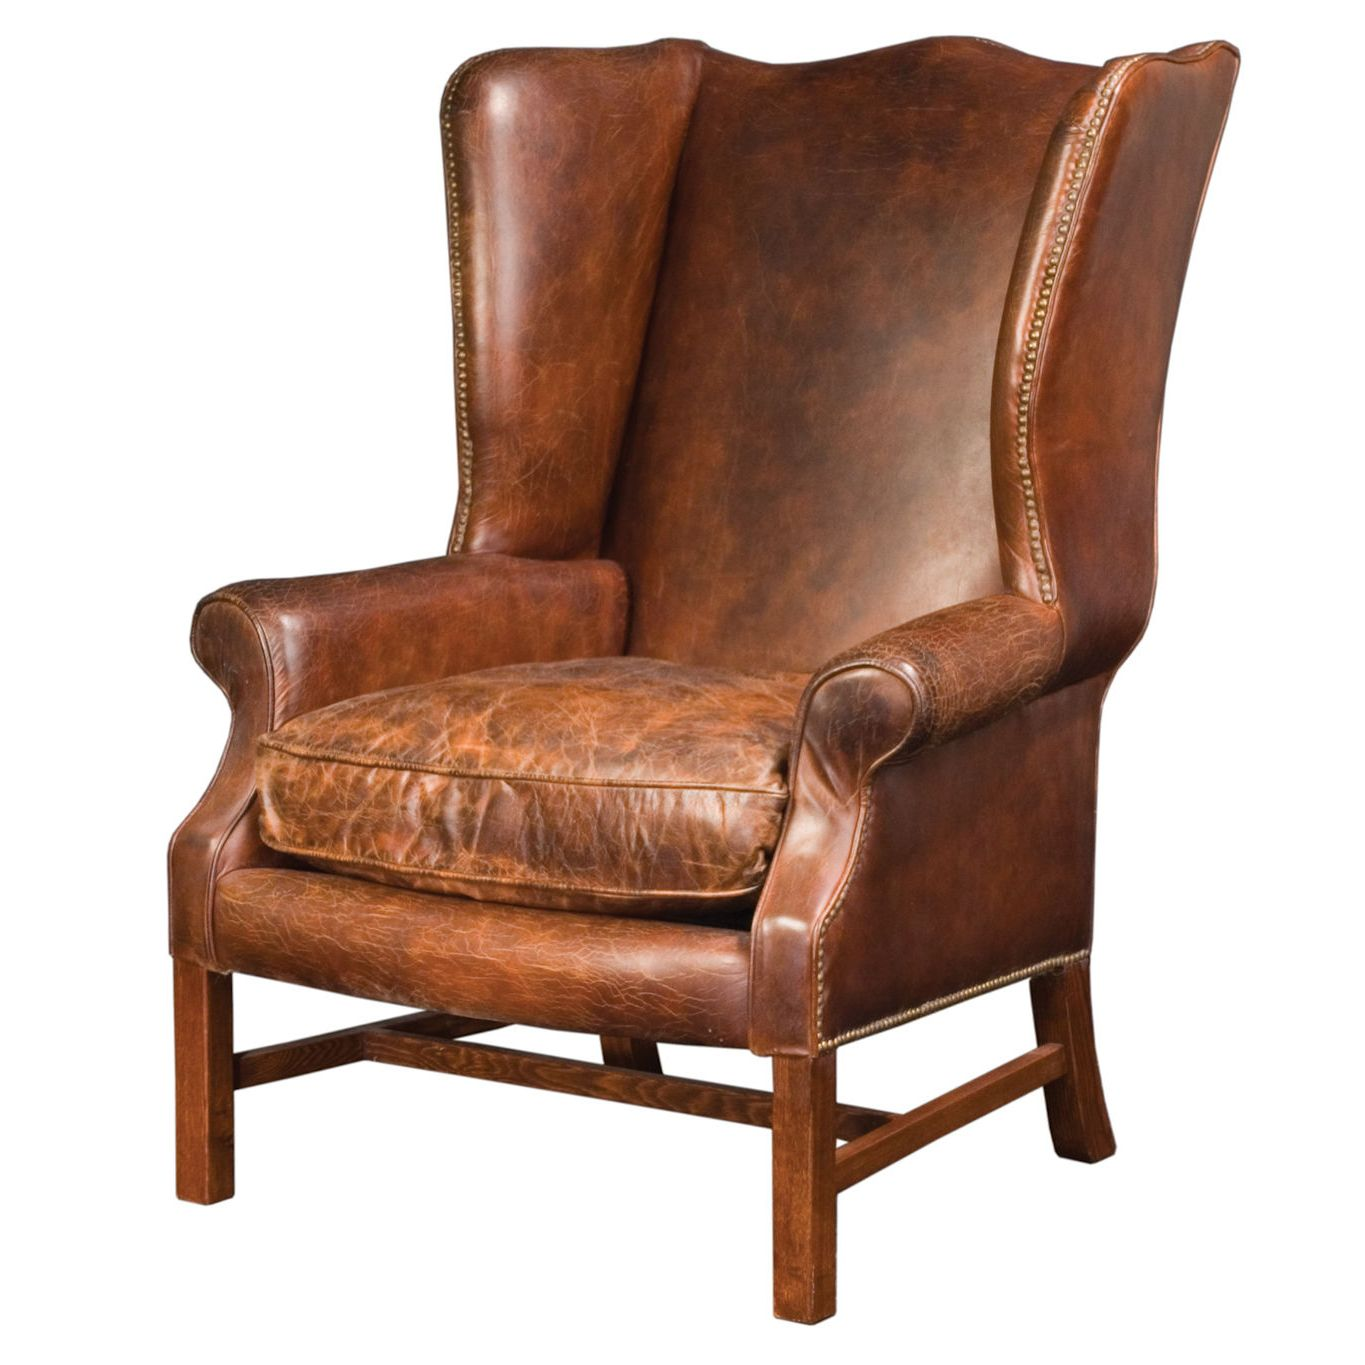 Leather Wingback Chairs Unusual Comfy Chair Image Of Pretty Pinterest